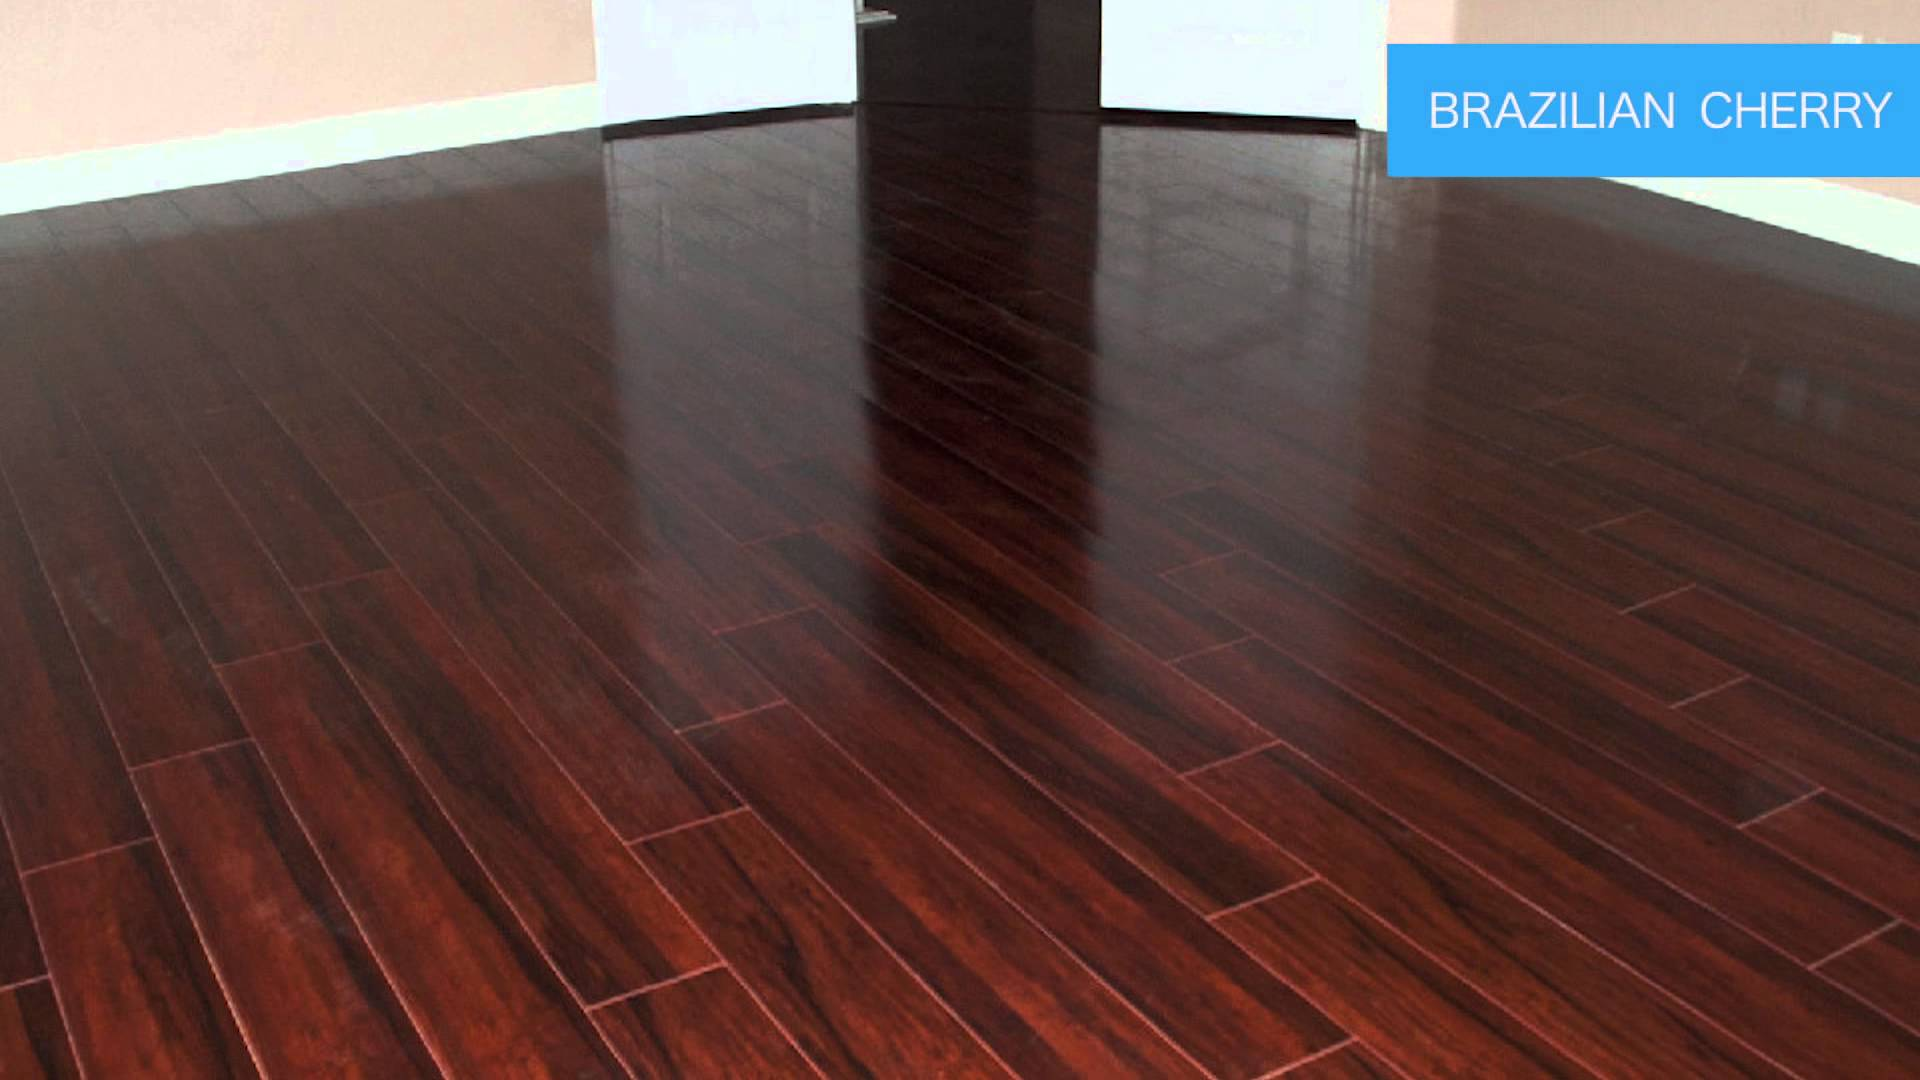 Cherry laminate flooring brazilian cherry laminate flooring | usa laminate flooring | miami -  sunrise, OOHFPTS